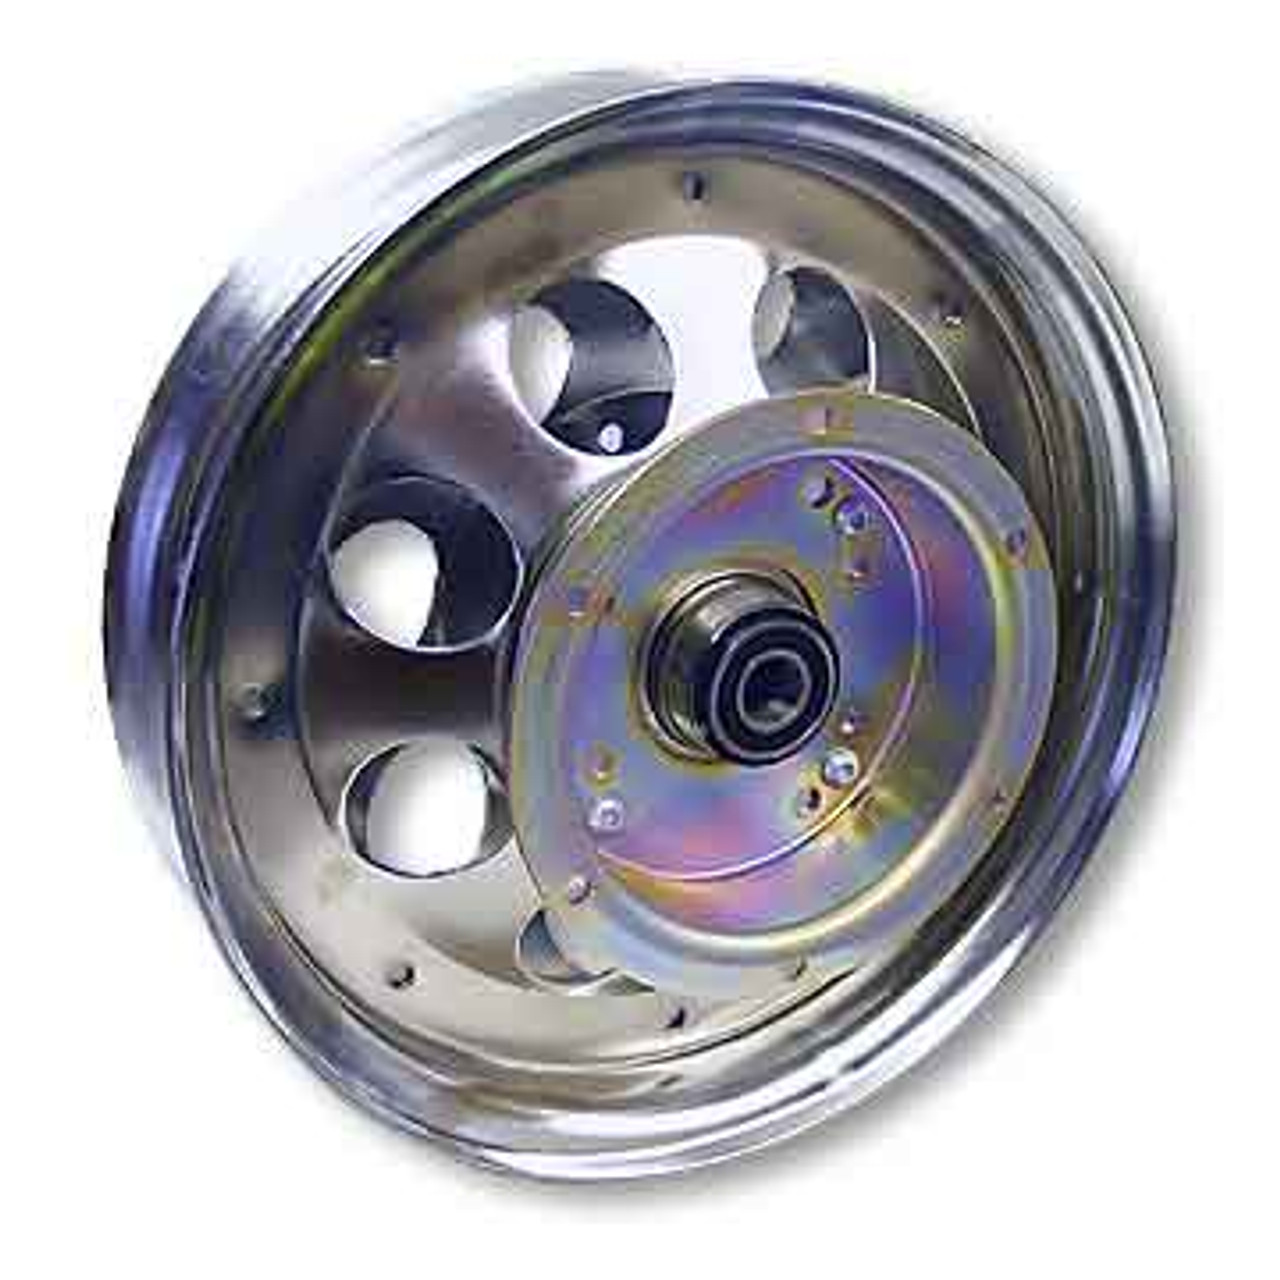 """10"""" Steel Wheel, Chrome Plated, With 5/8"""" ID Precision Ball Bearing, Flanged Brake Drum"""